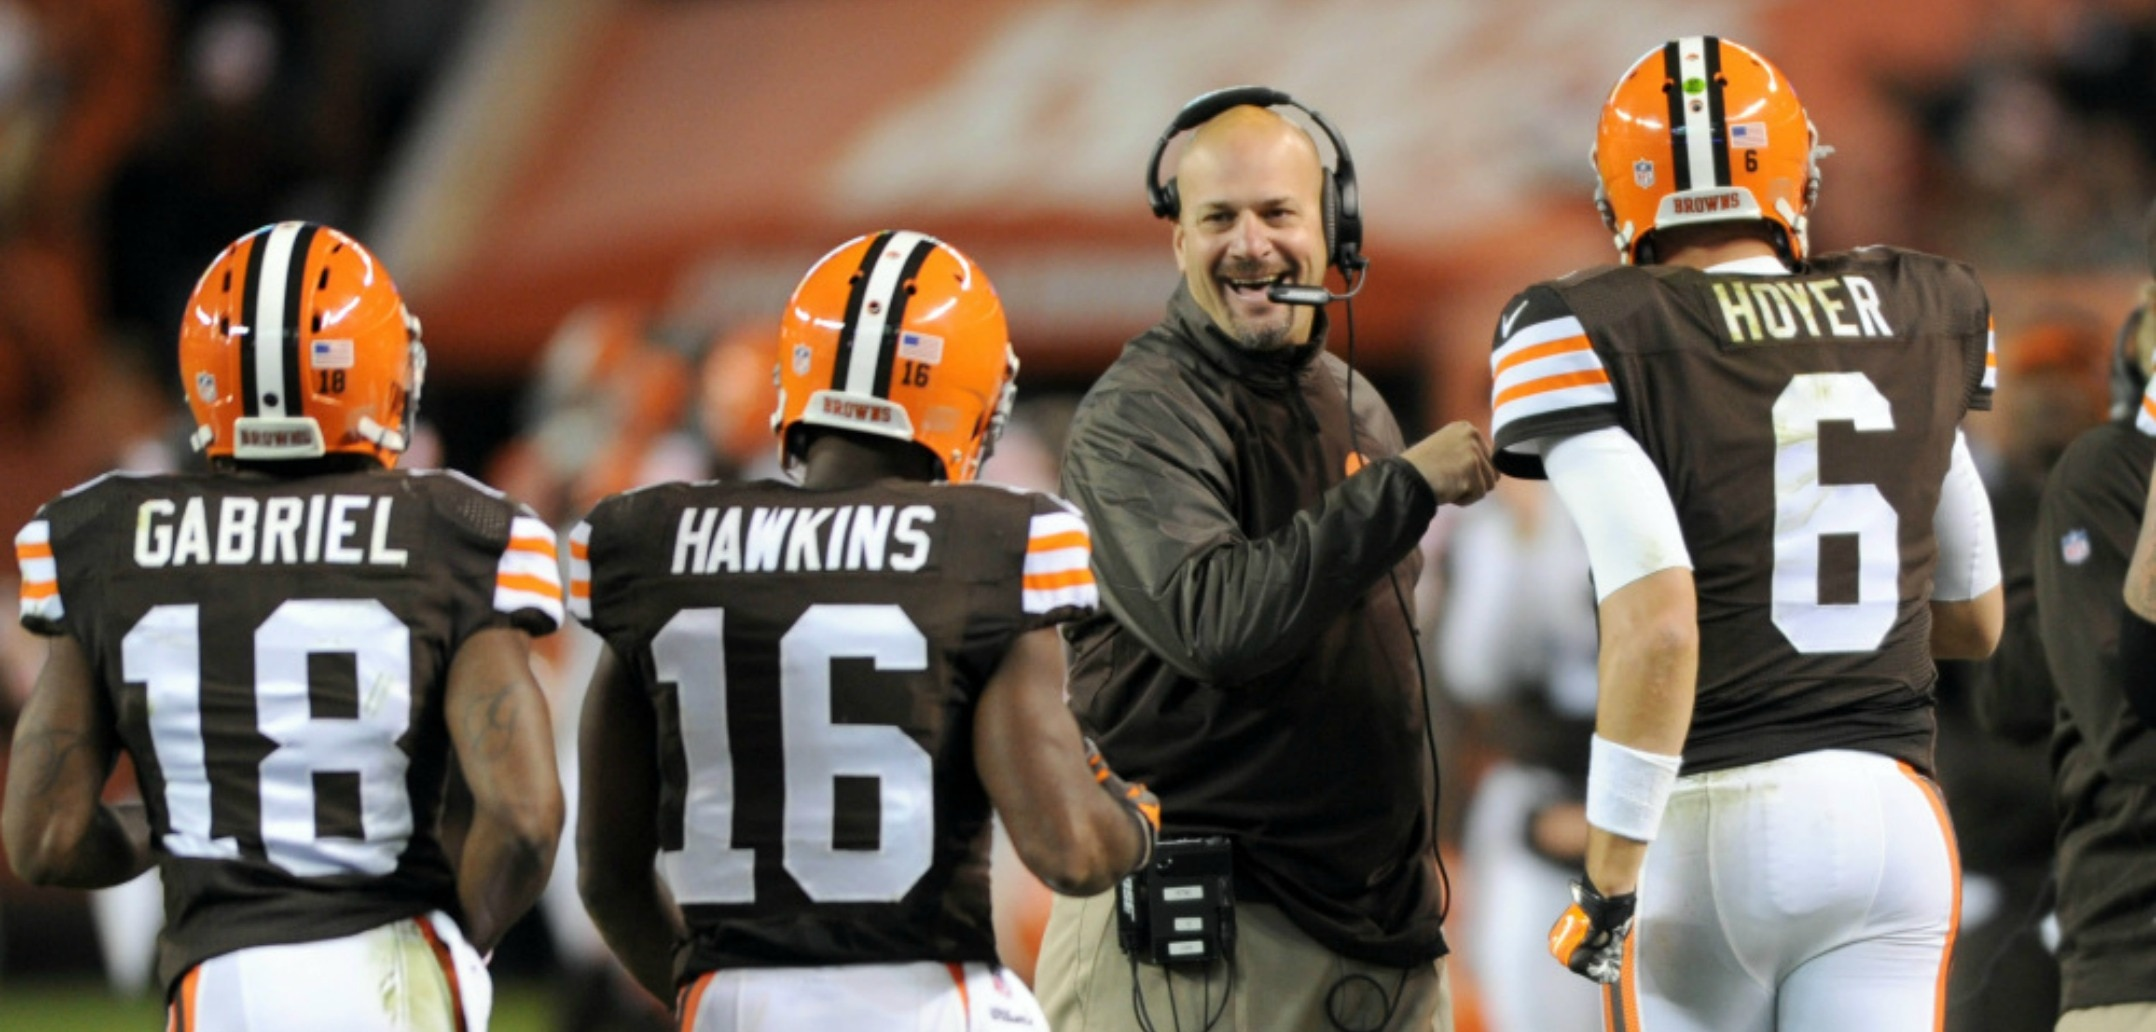 Courtesy of USA Today: Mike Pettine has his team playing great football.